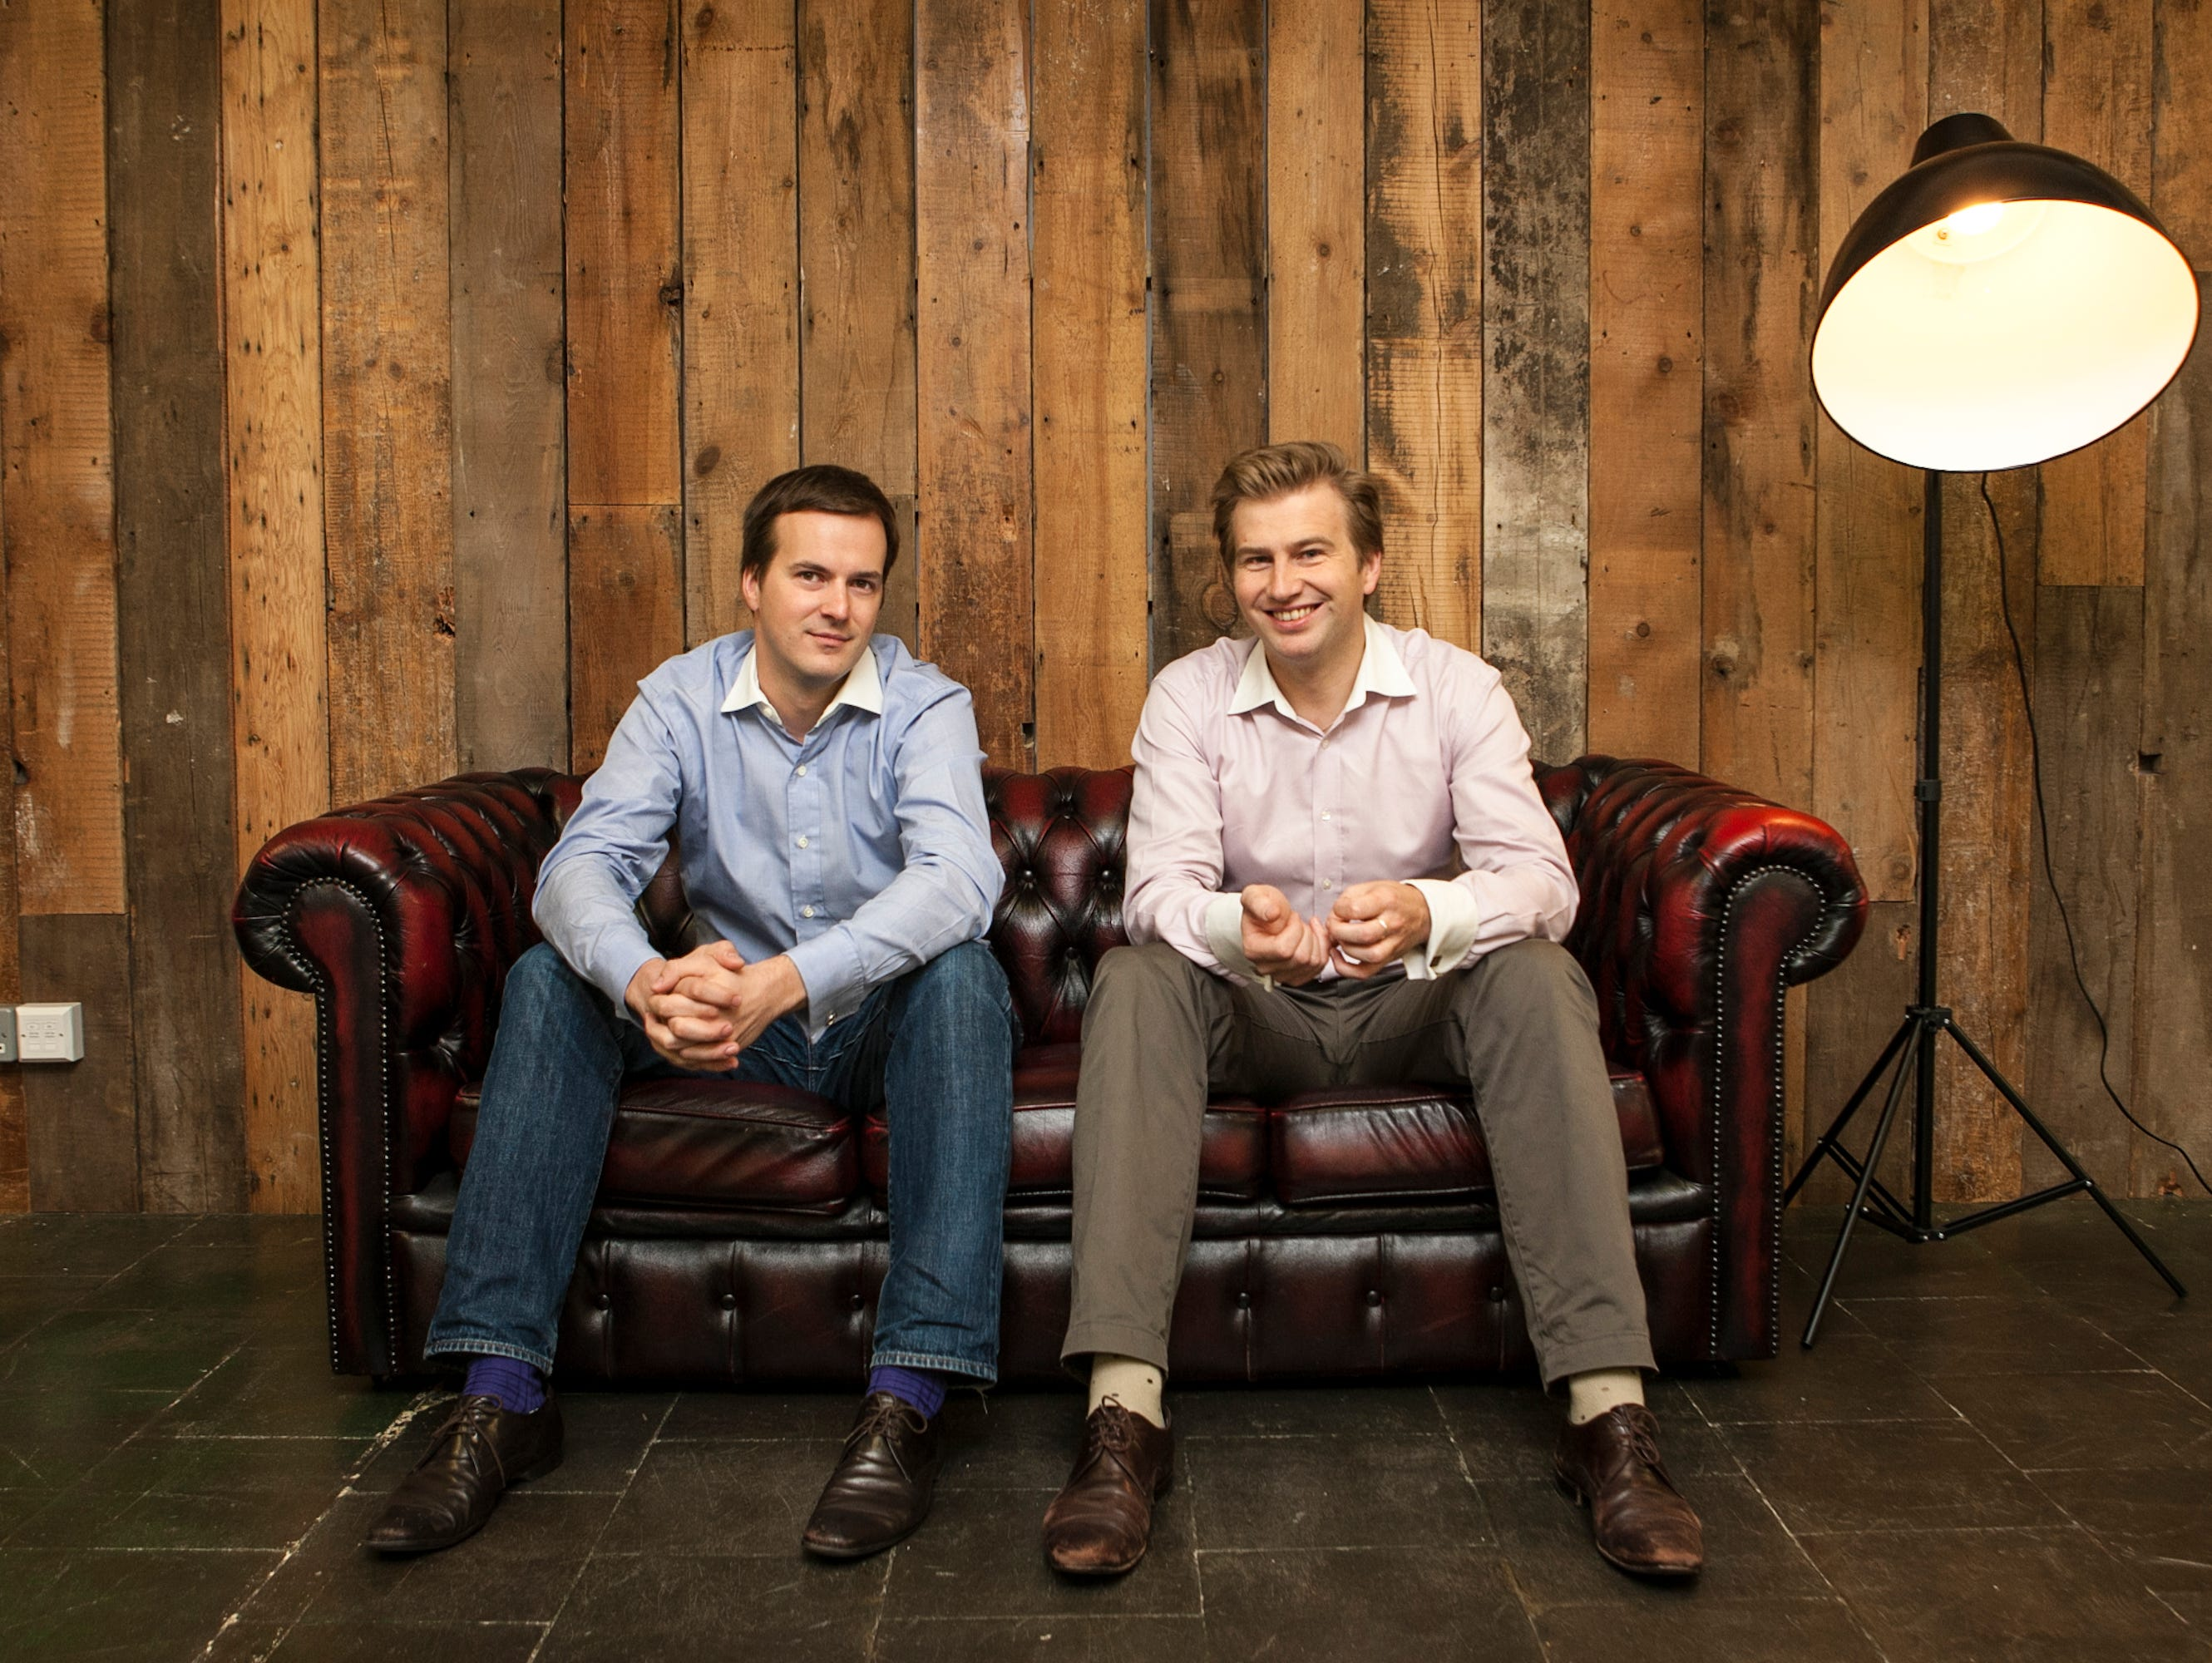 TransferWise founders Taavet Hinrikus, who was Skype's first employee, and his friend Kristo Kaarmann.